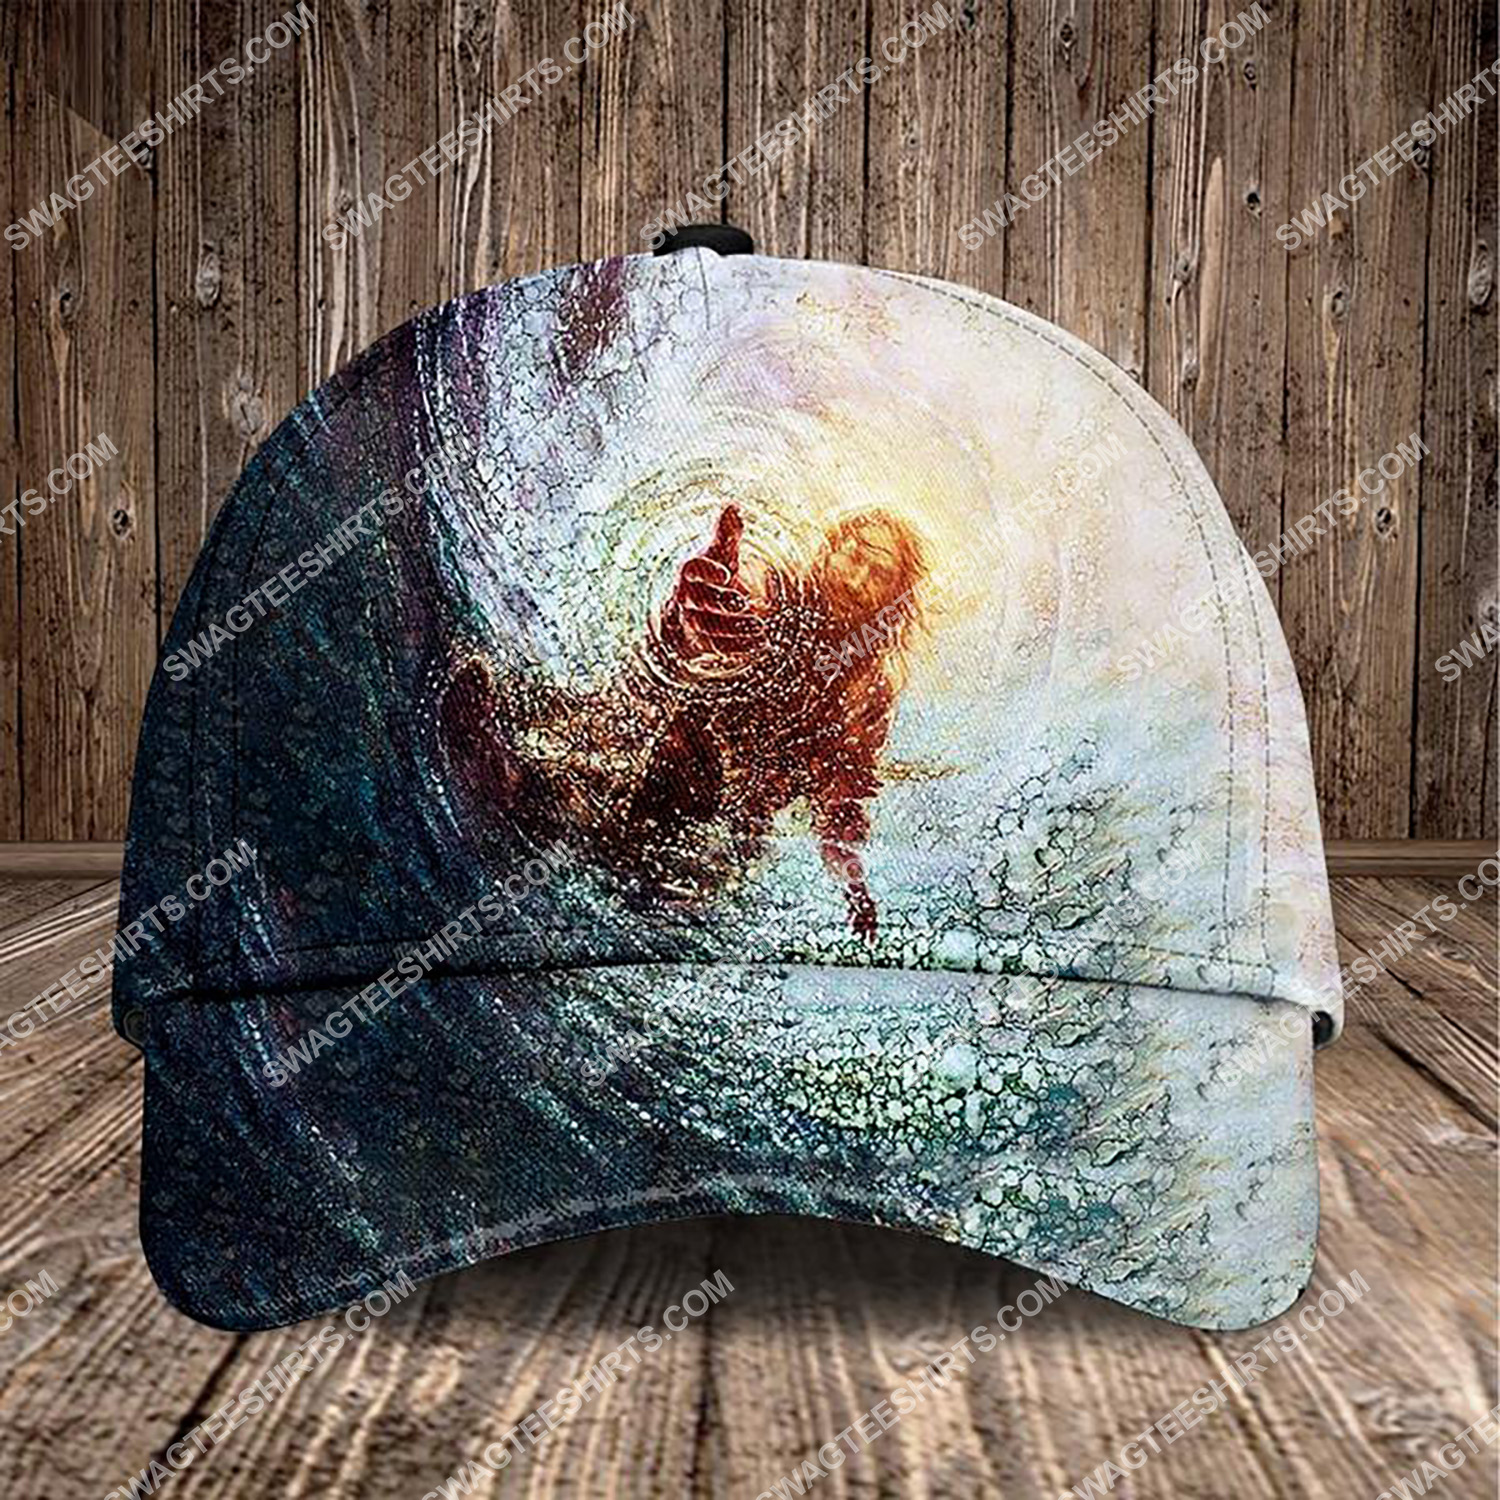 Jesus reaching into water all over printed classic cap 3 - Copy (3)